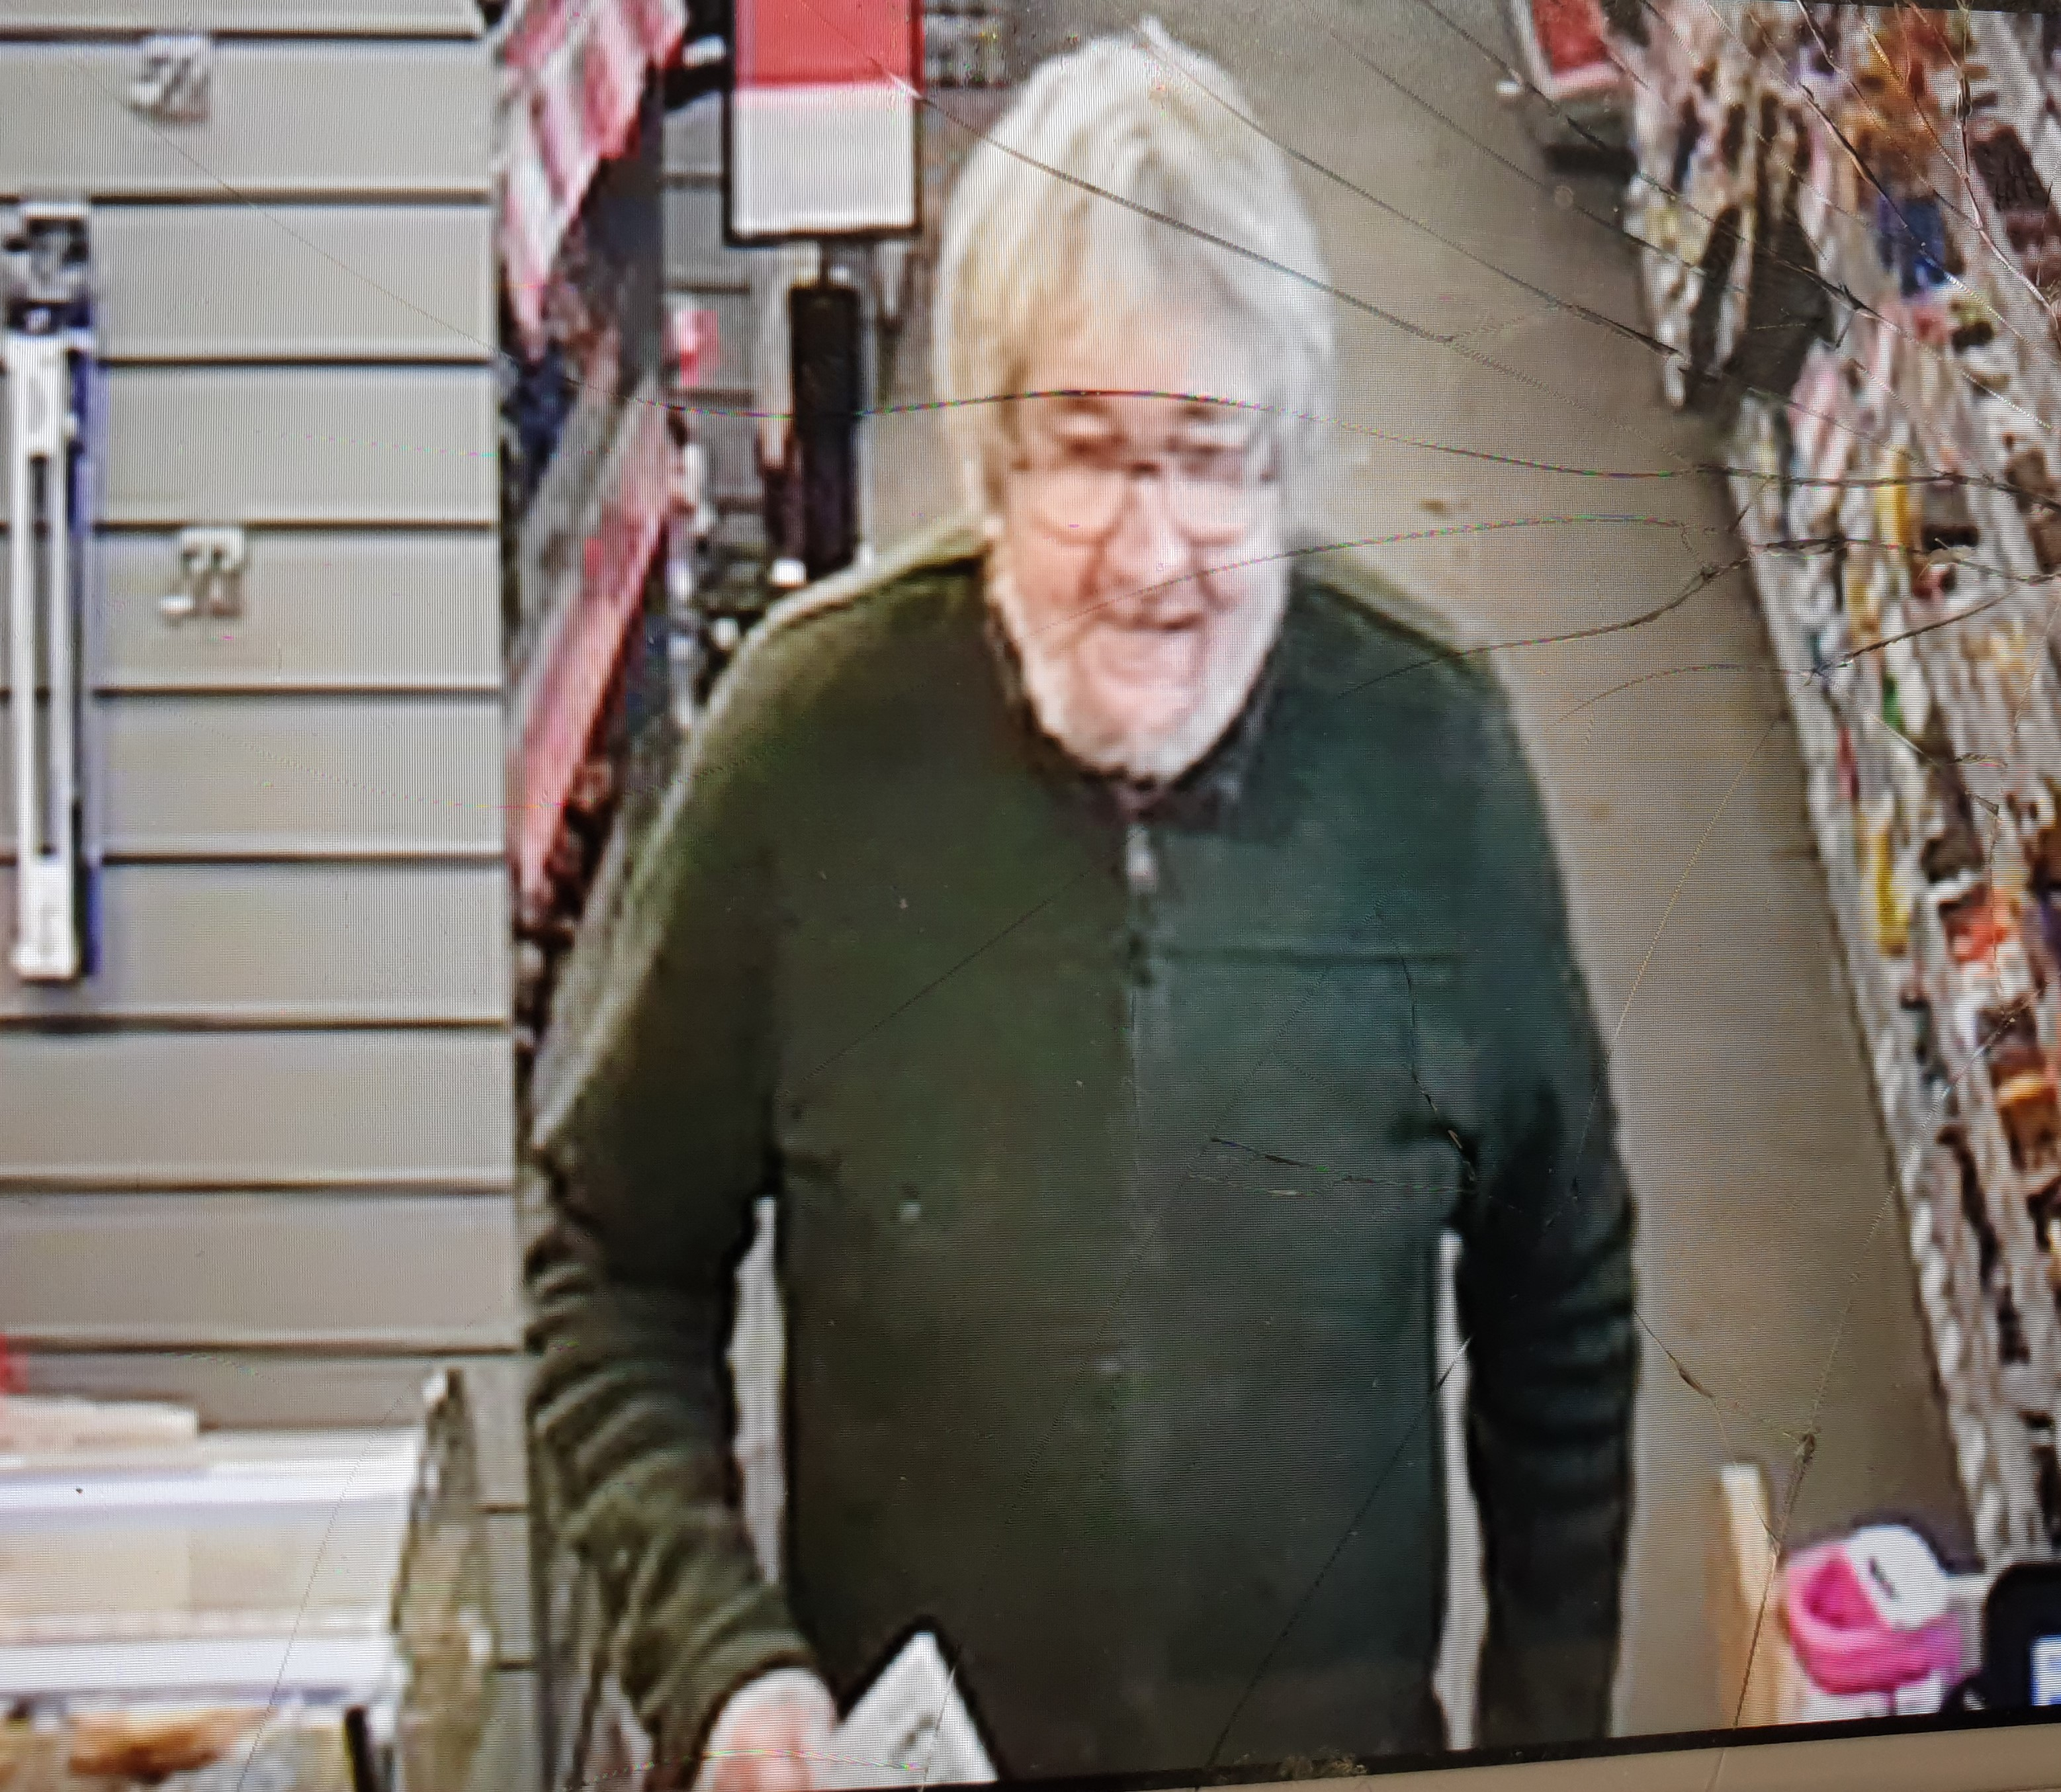 Police have released this CCTV image of James Paton captured shortly before he went missing.